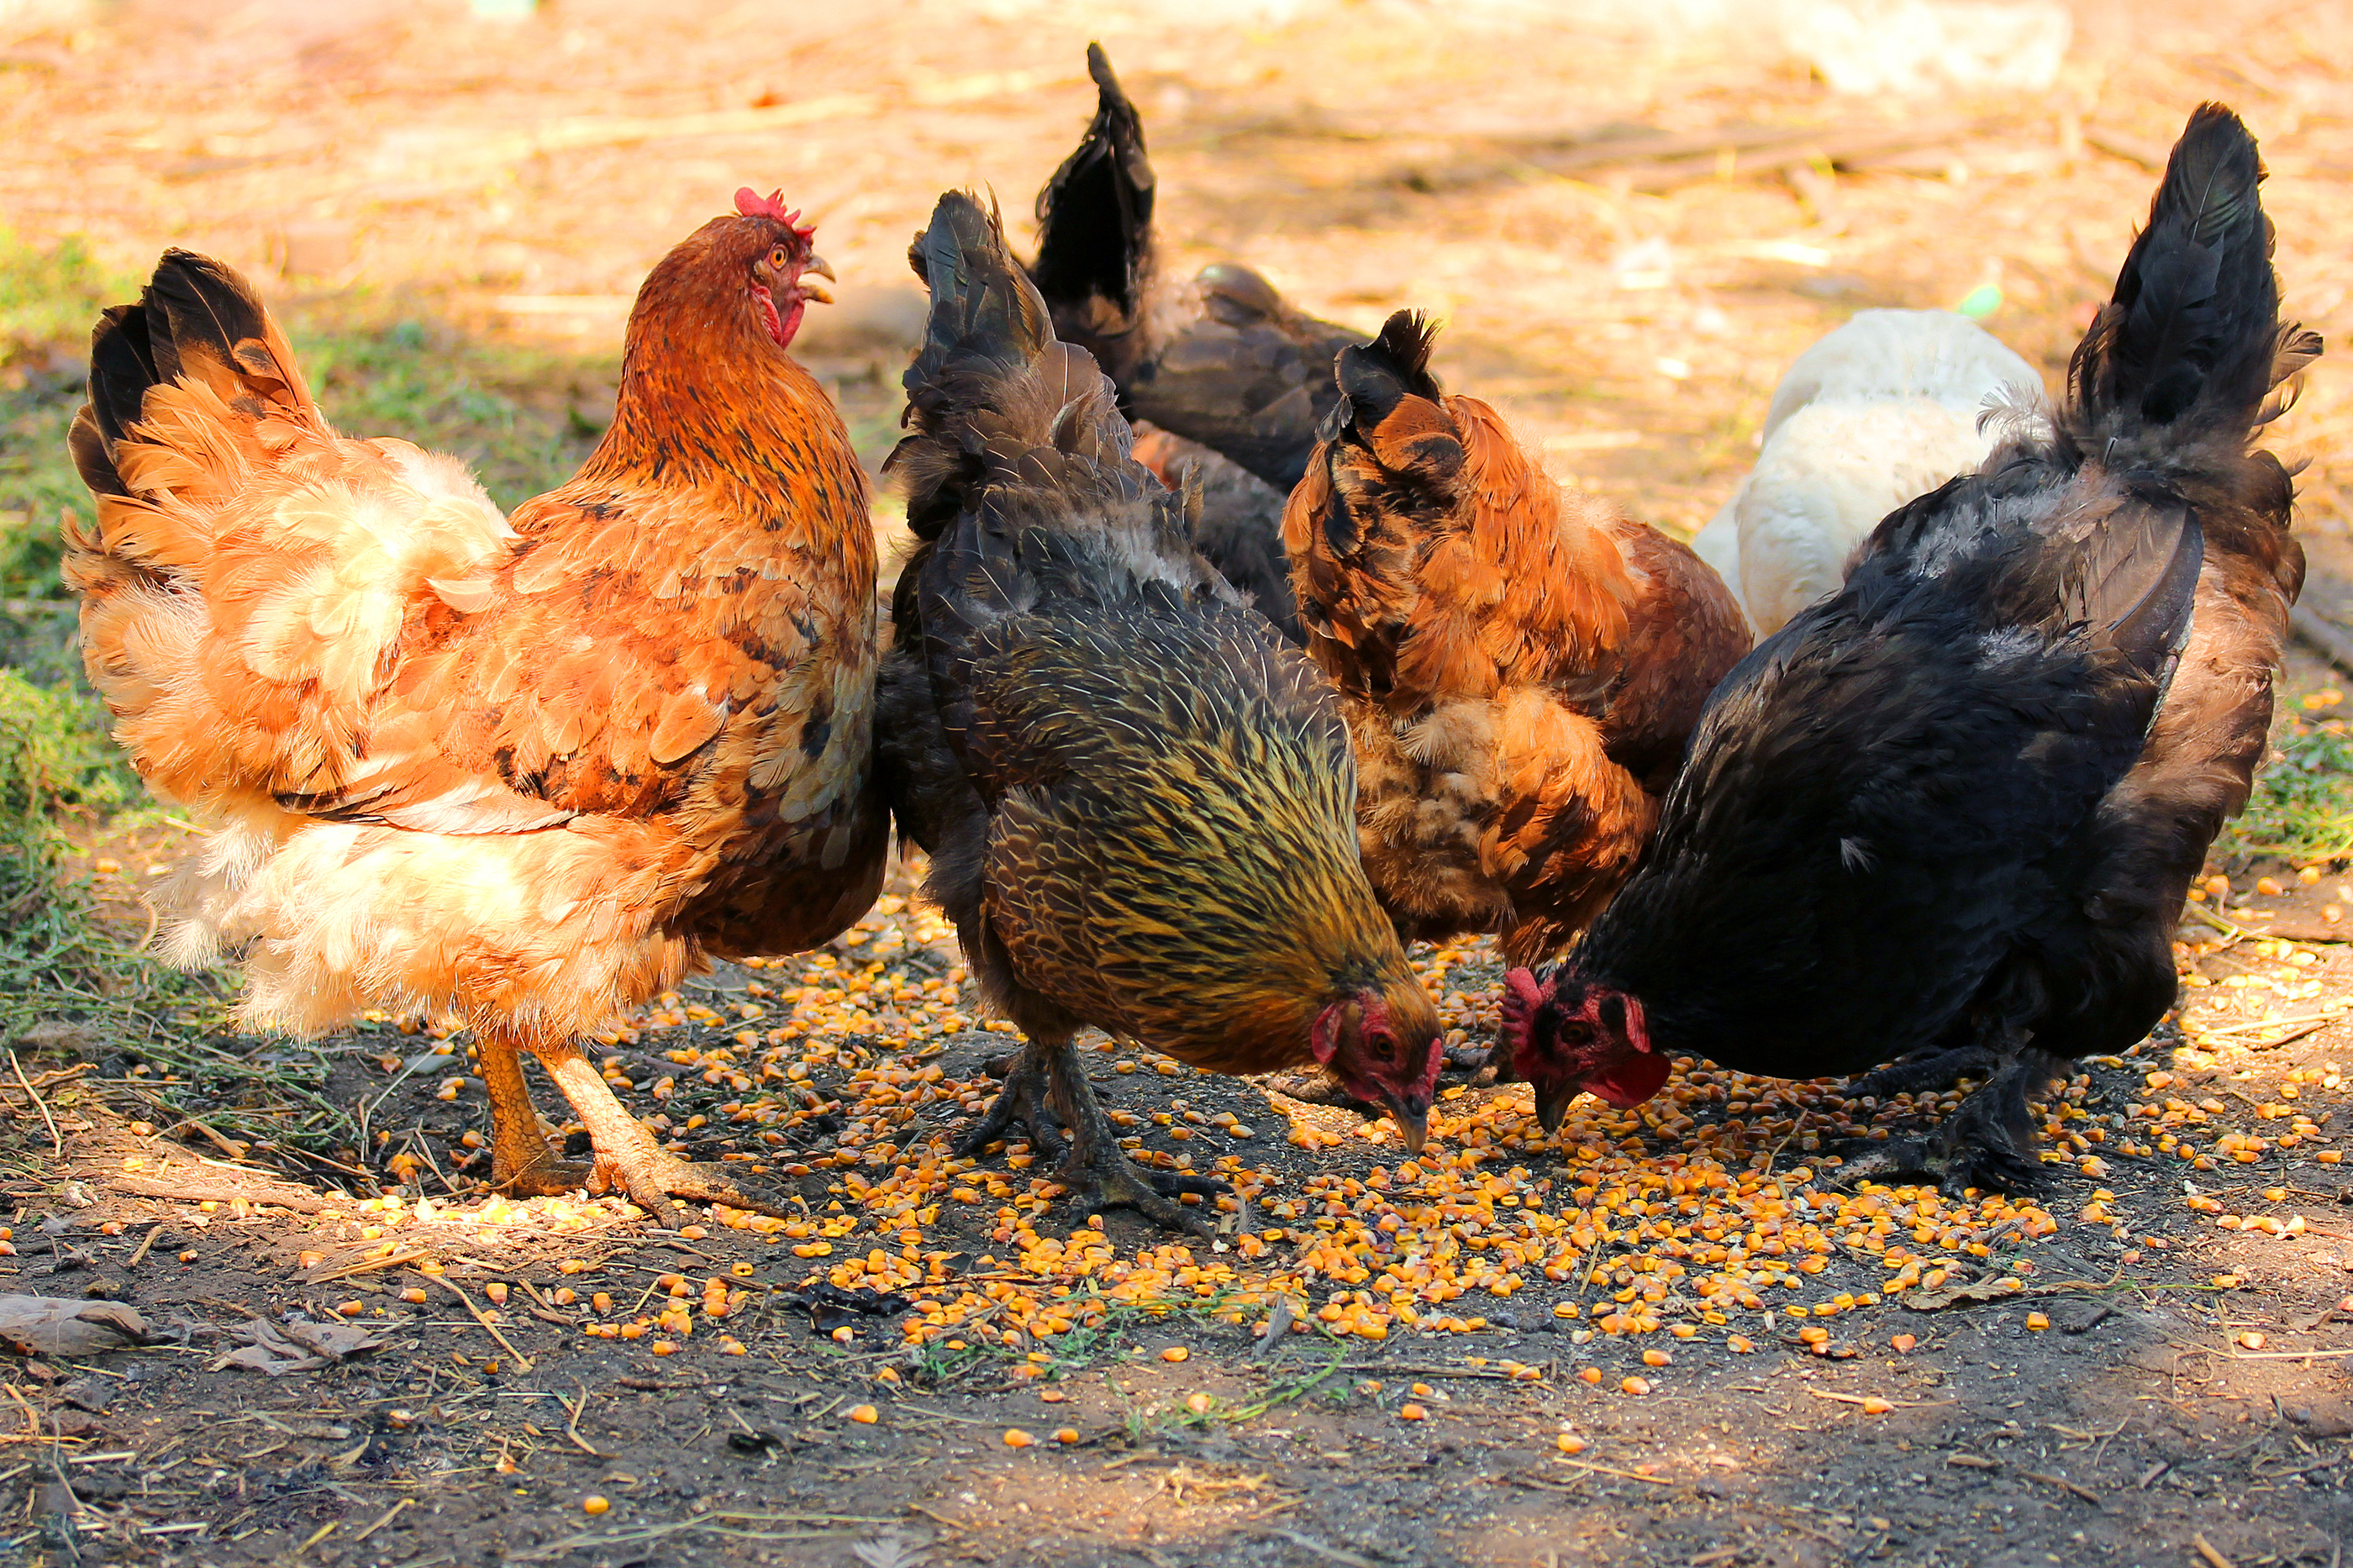 Feeding Poultry Outdoors